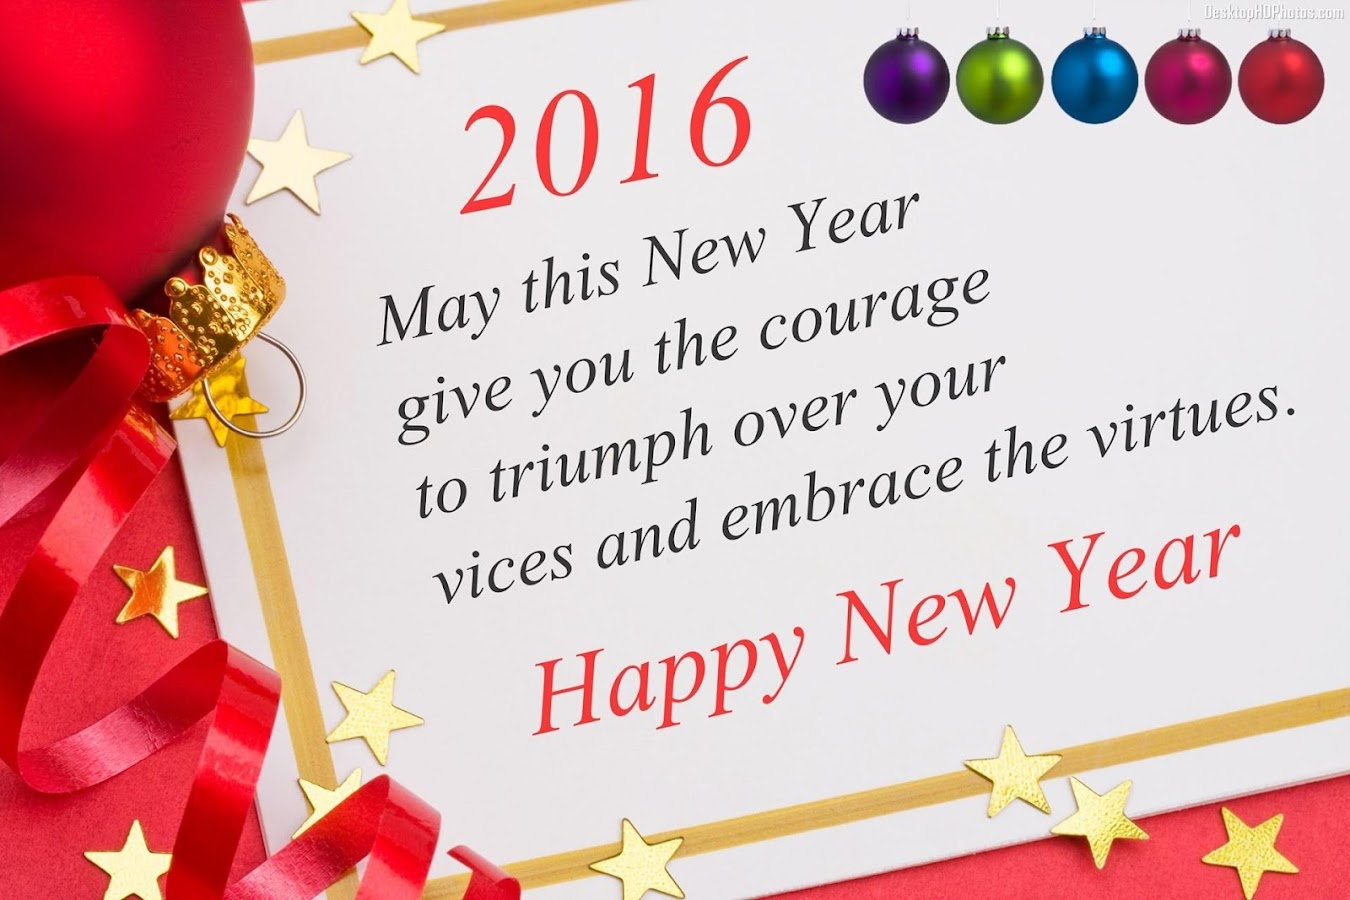 New Year Status 2016 22 Apk Download Android Entertainment Apps